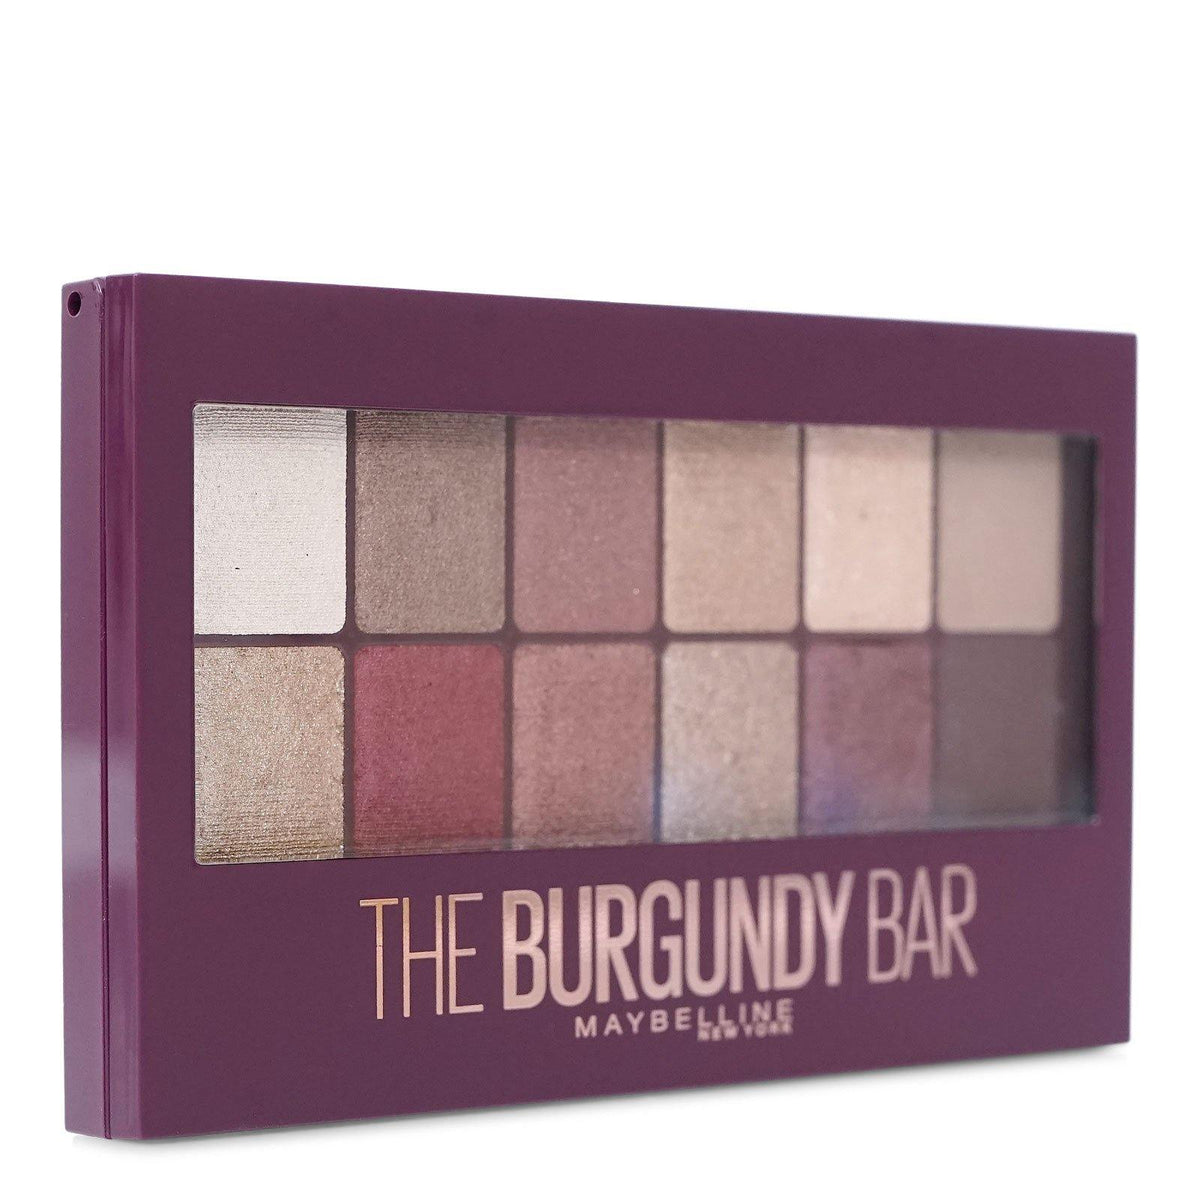 MAYBELLINE 'THE BURGUNDY BAR' 12-PAN EYESHADOW # 200 (24/cs)